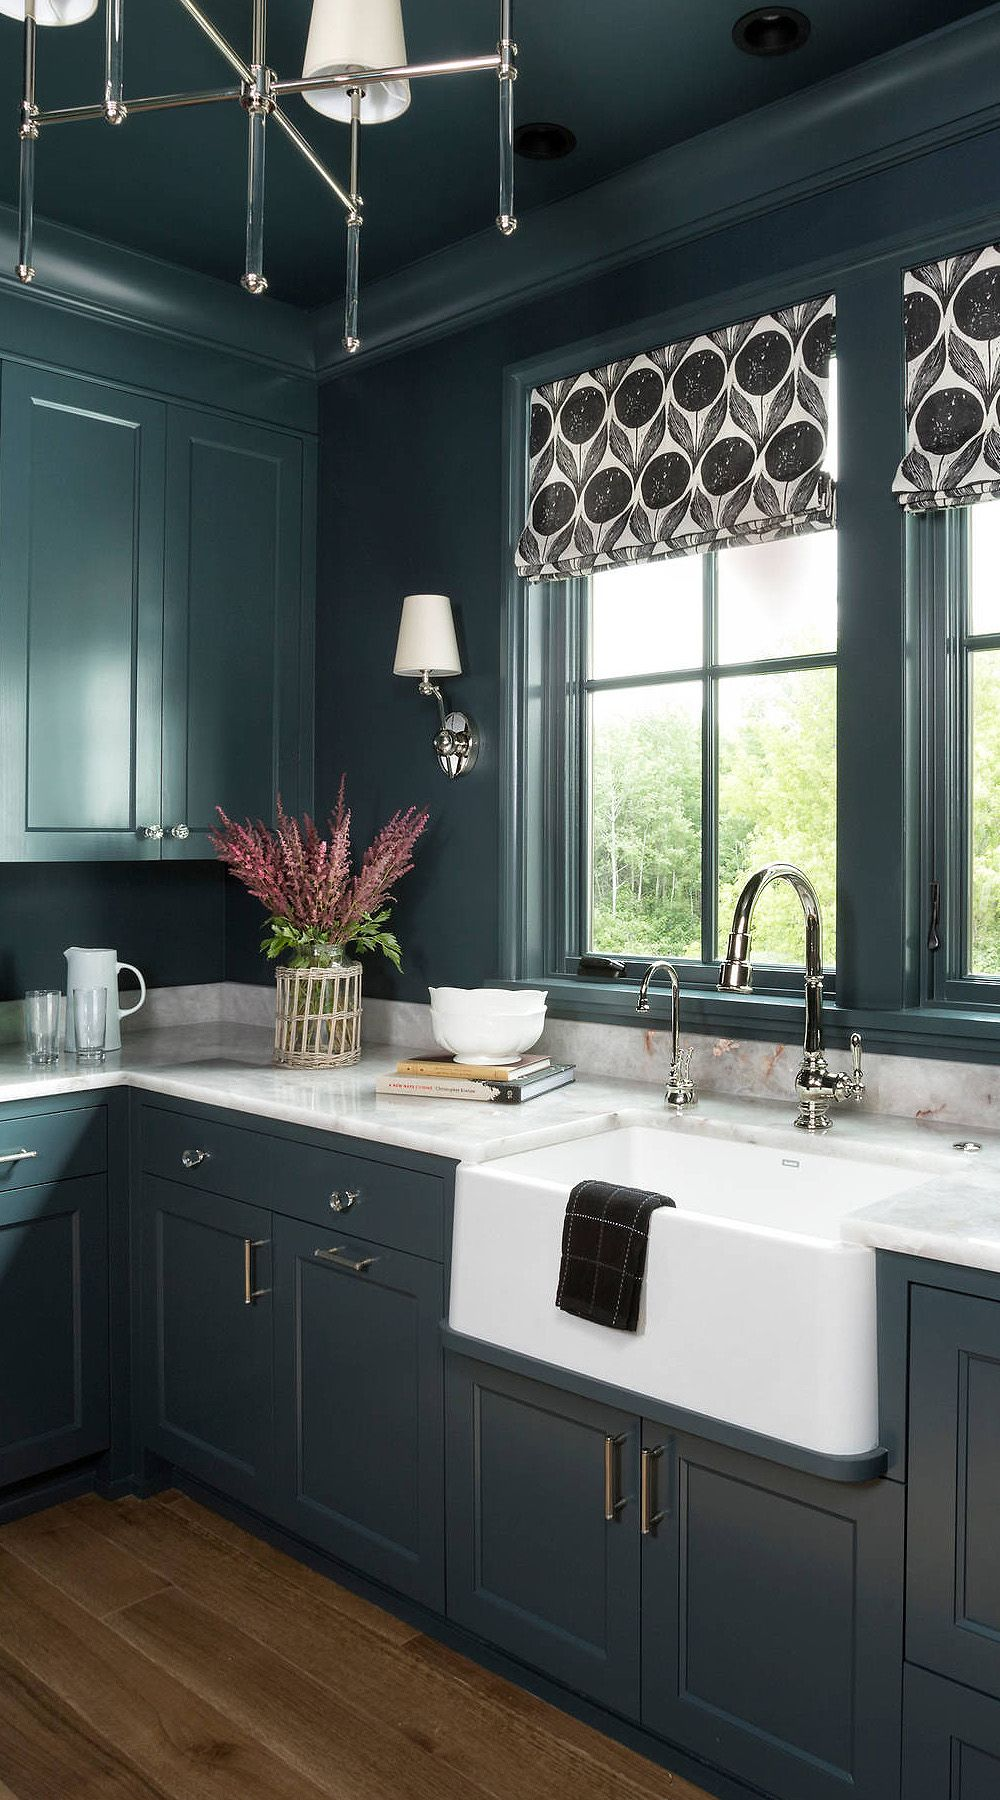 34 top green kitchen cabinets good for kitchen get ideas in 2020 with images on kitchen ideas cabinets id=87894